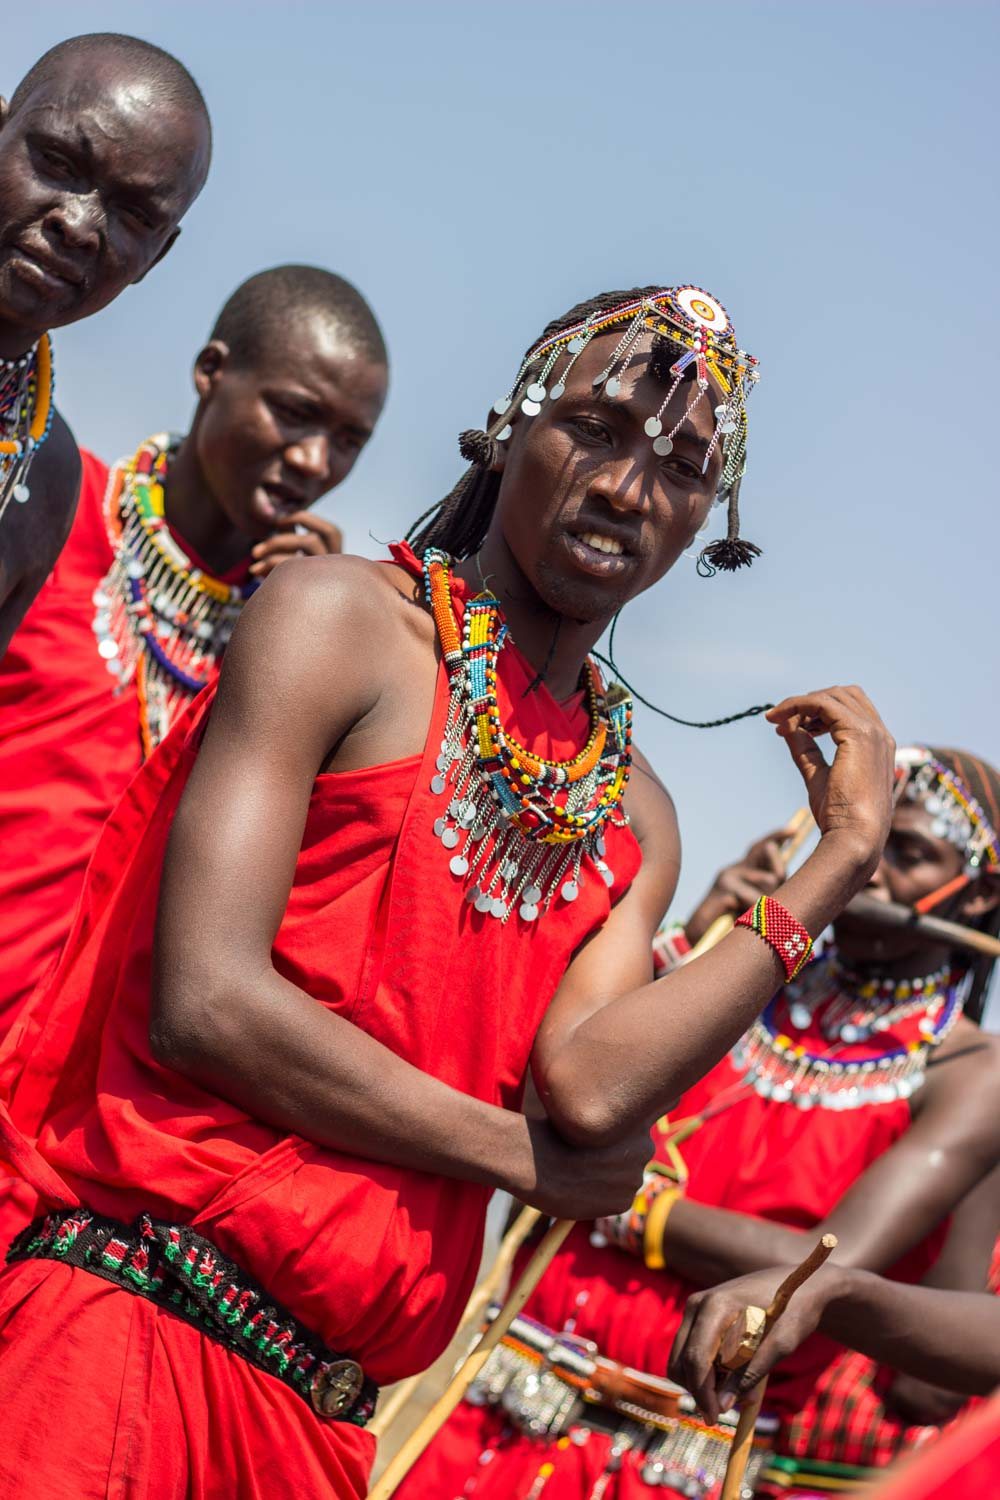 The Vibrant Colours and Jewellery Of East Africa